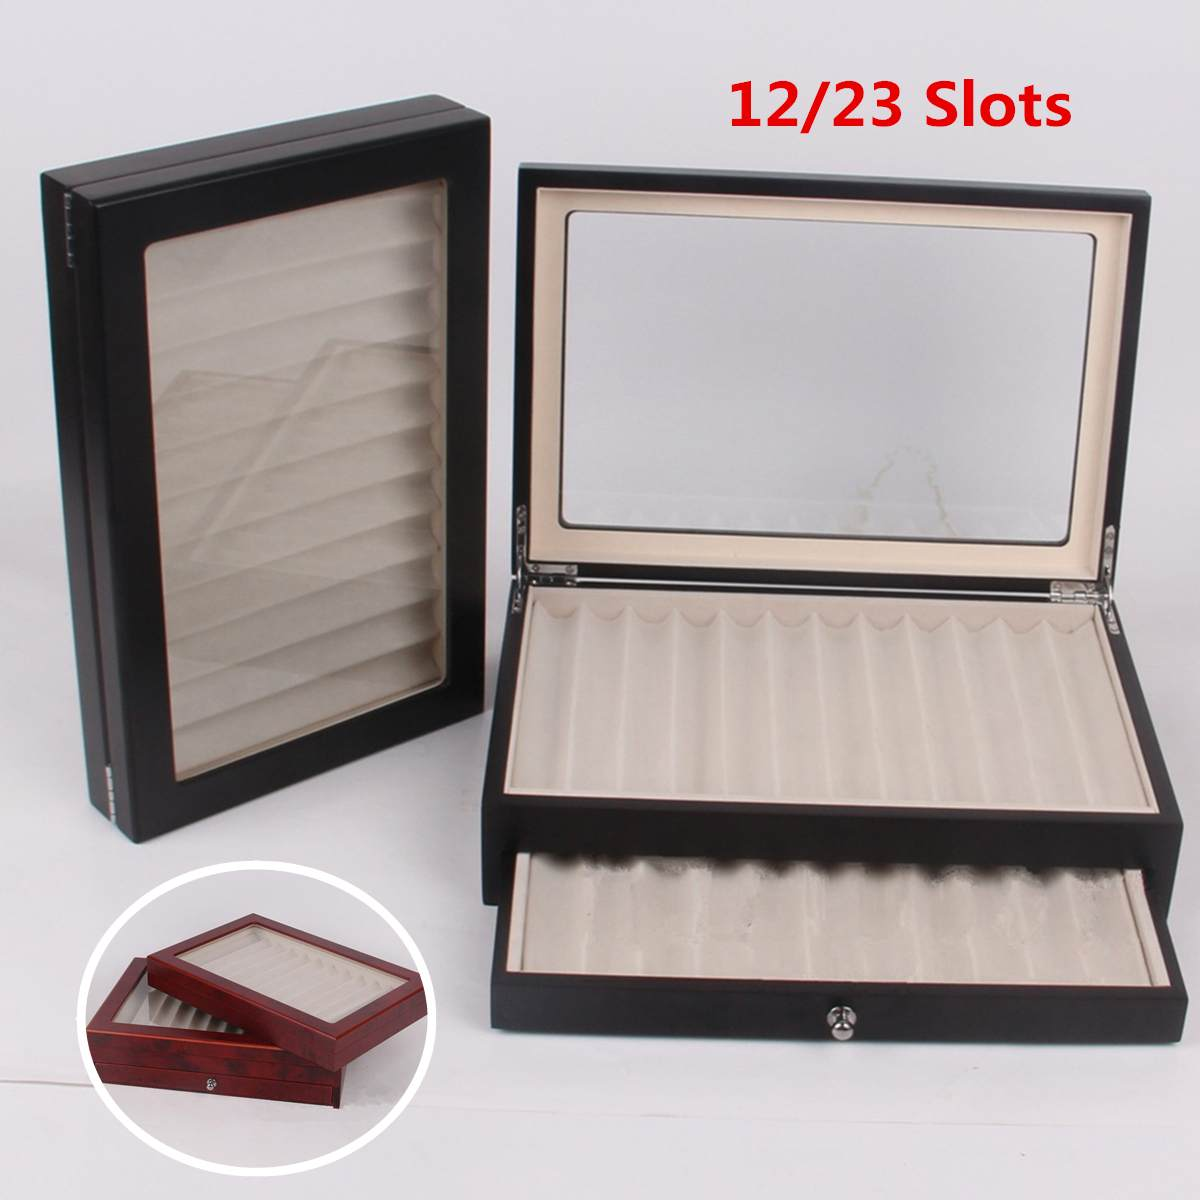 12/30 Pen Fountain Wood Display Case Holder Wooden Pen box Storage Collector Organizer Box Black12/30 Pen Fountain Wood Display Case Holder Wooden Pen box Storage Collector Organizer Box Black